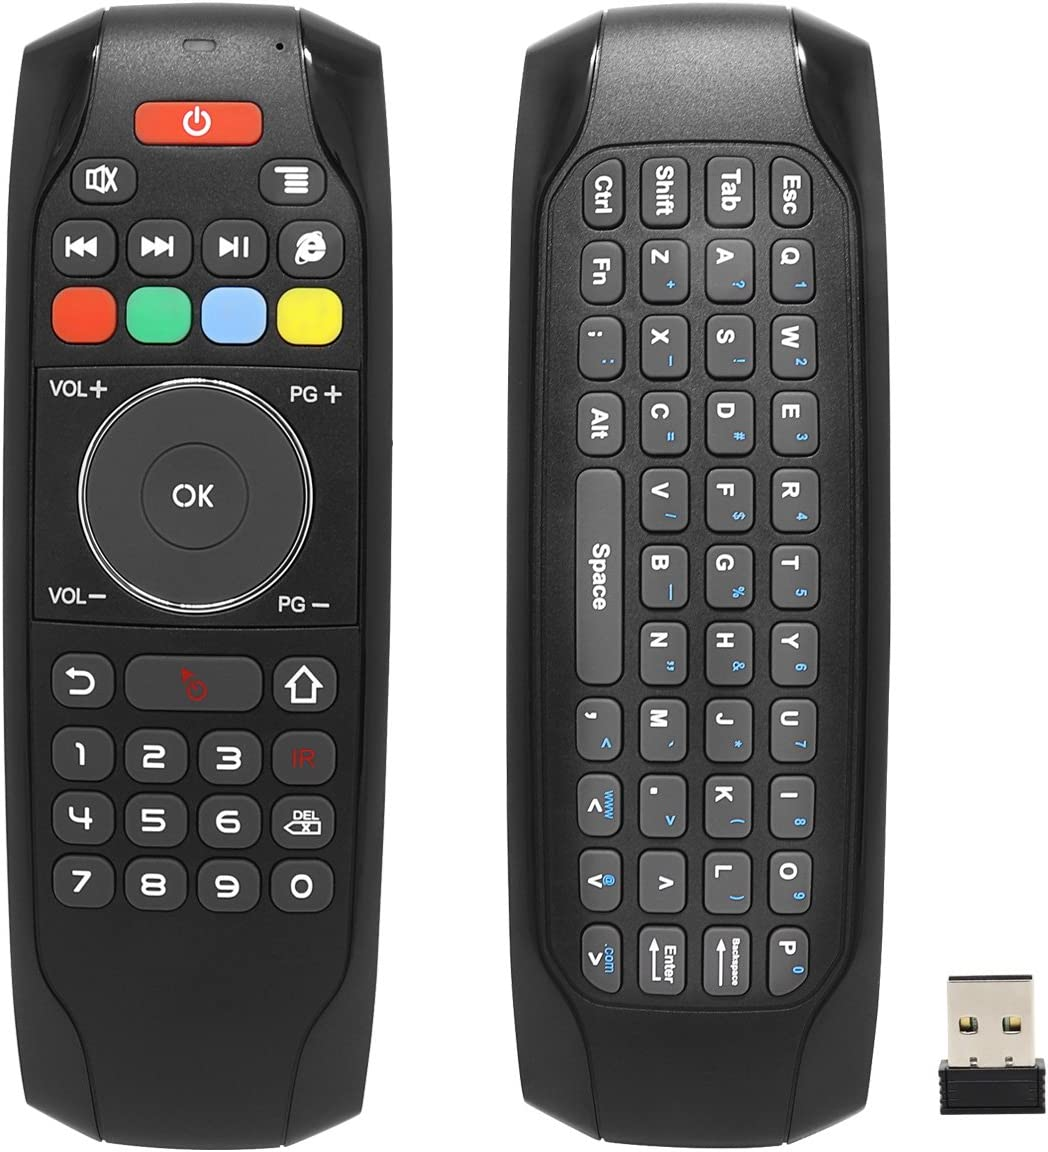 Smart Remote Replacement BIFANS Fly Mouse Multifunctional Max 46% OFF Air 2021 autumn and winter new R